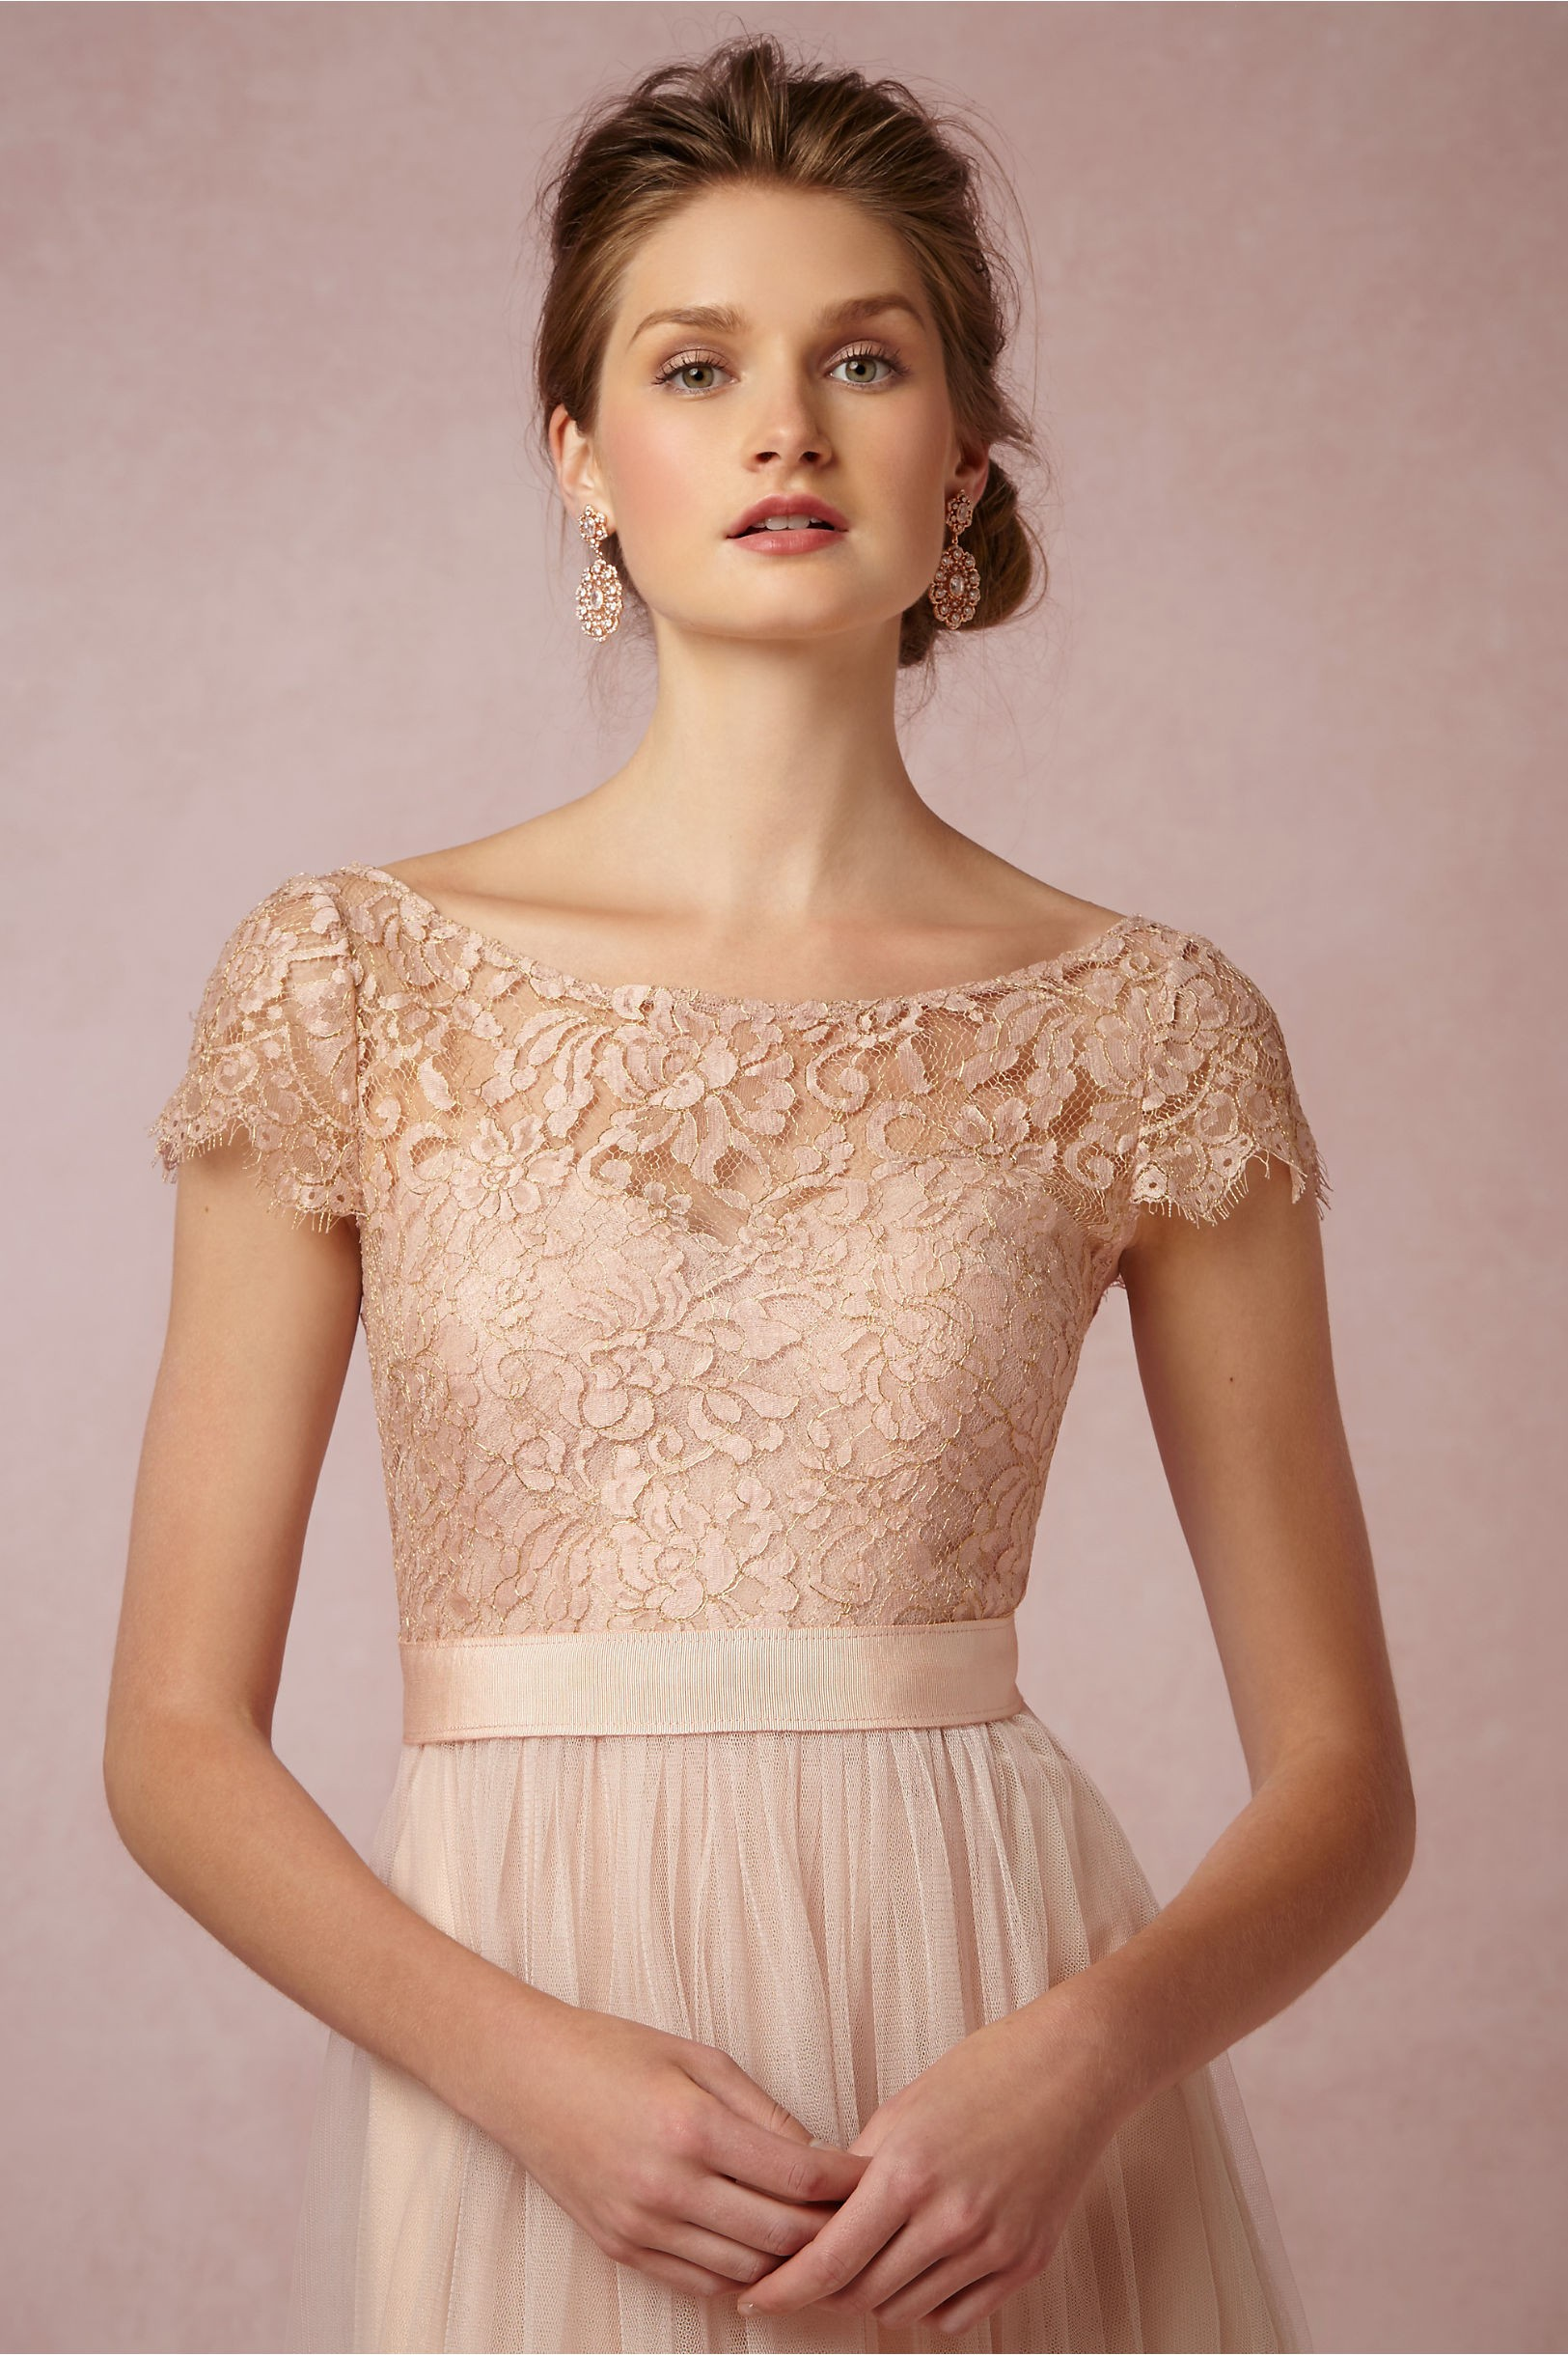 Spring 2015 BHLDN Collection Is Here